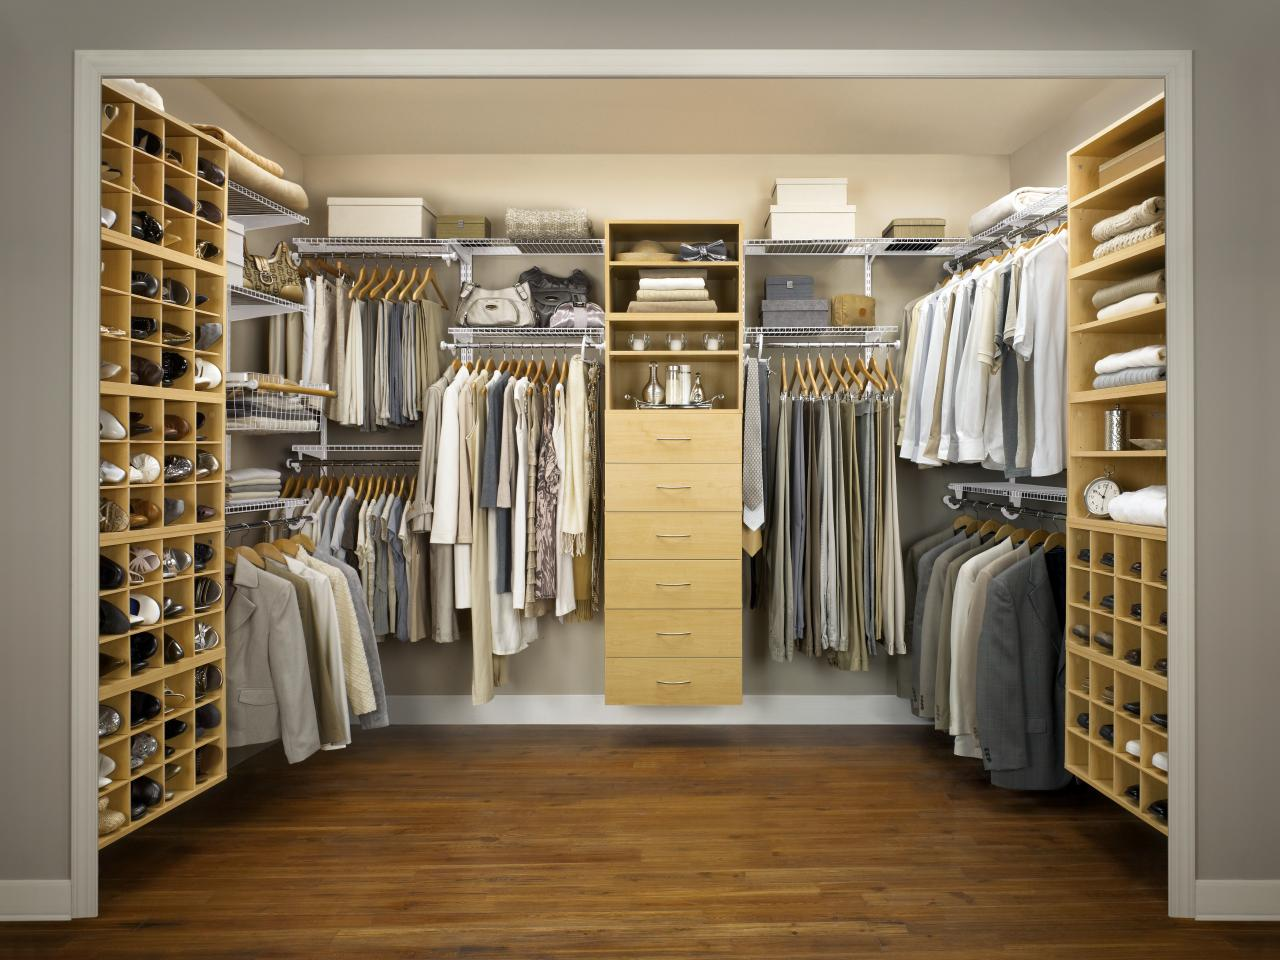 Bedroom Closets Design master closet design ideas | hgtv